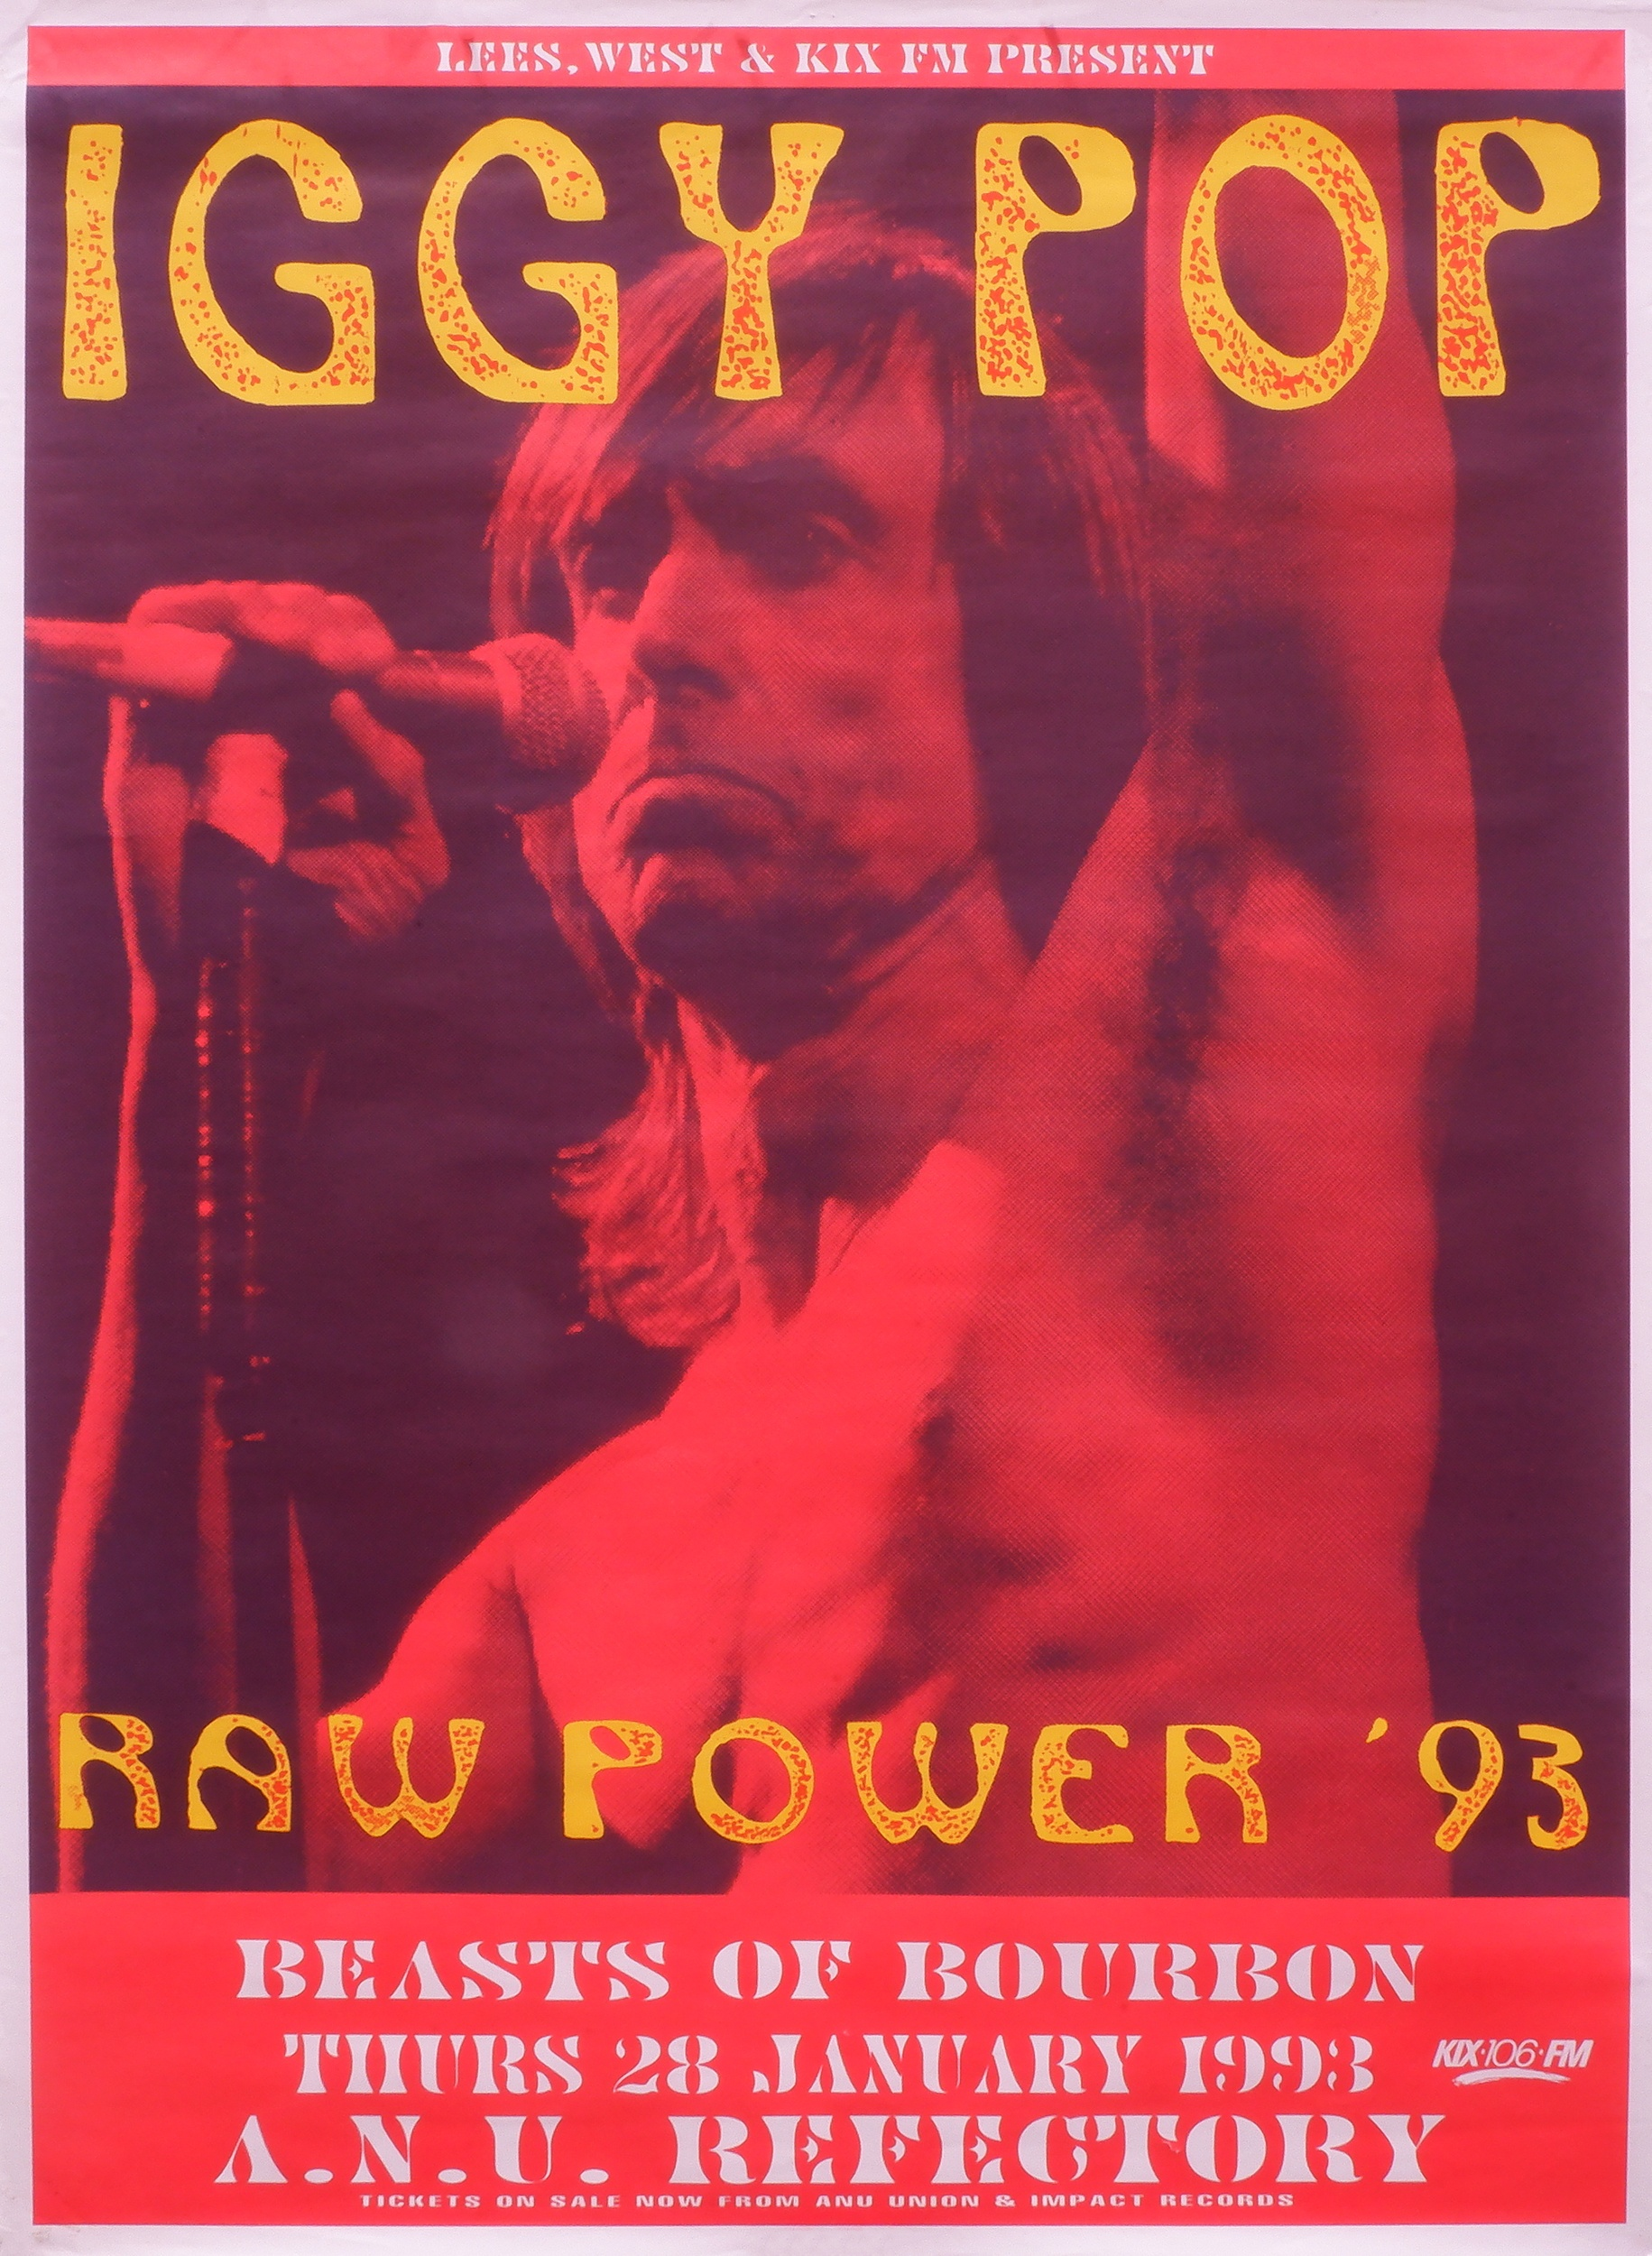 'Original Iggy Pop ANU Refectory 1993 Australian Tour Concert Poster'